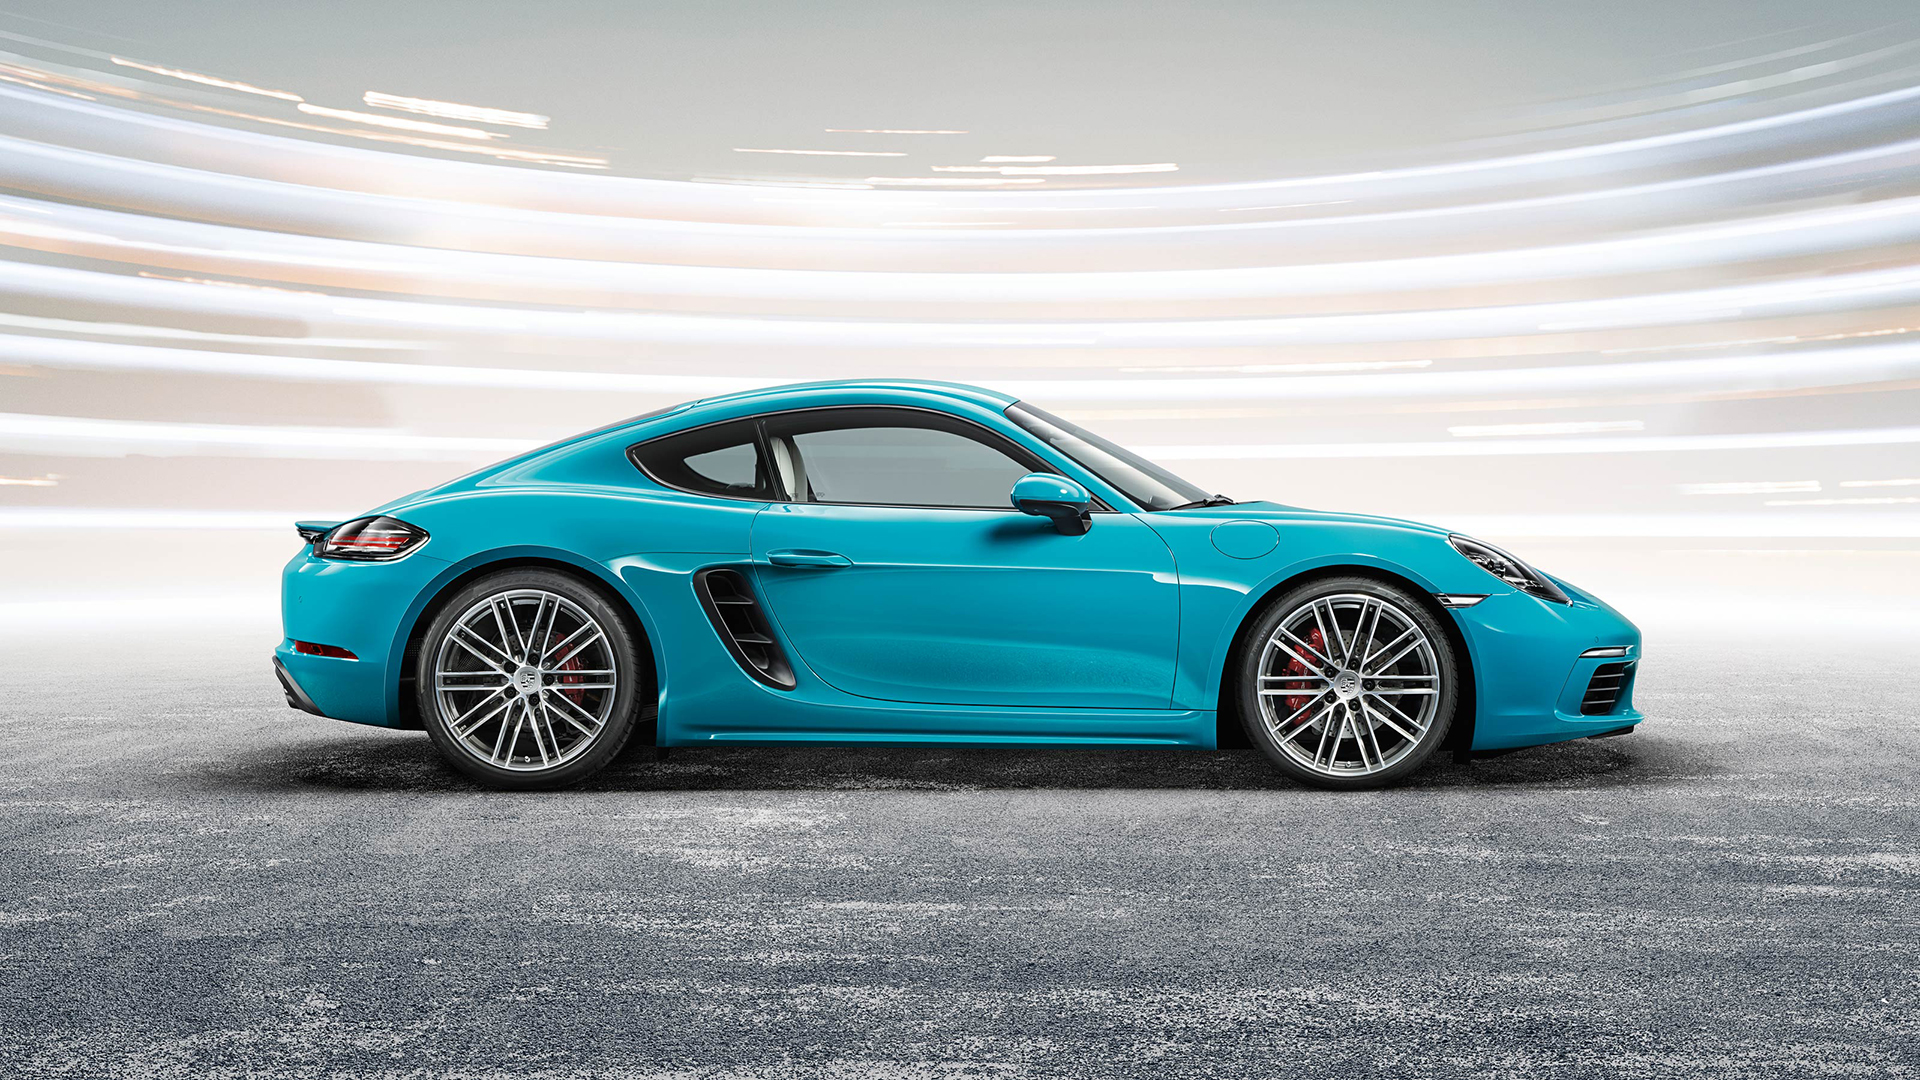 Porsche 718 Cayman S - 2016 - side-face / profil